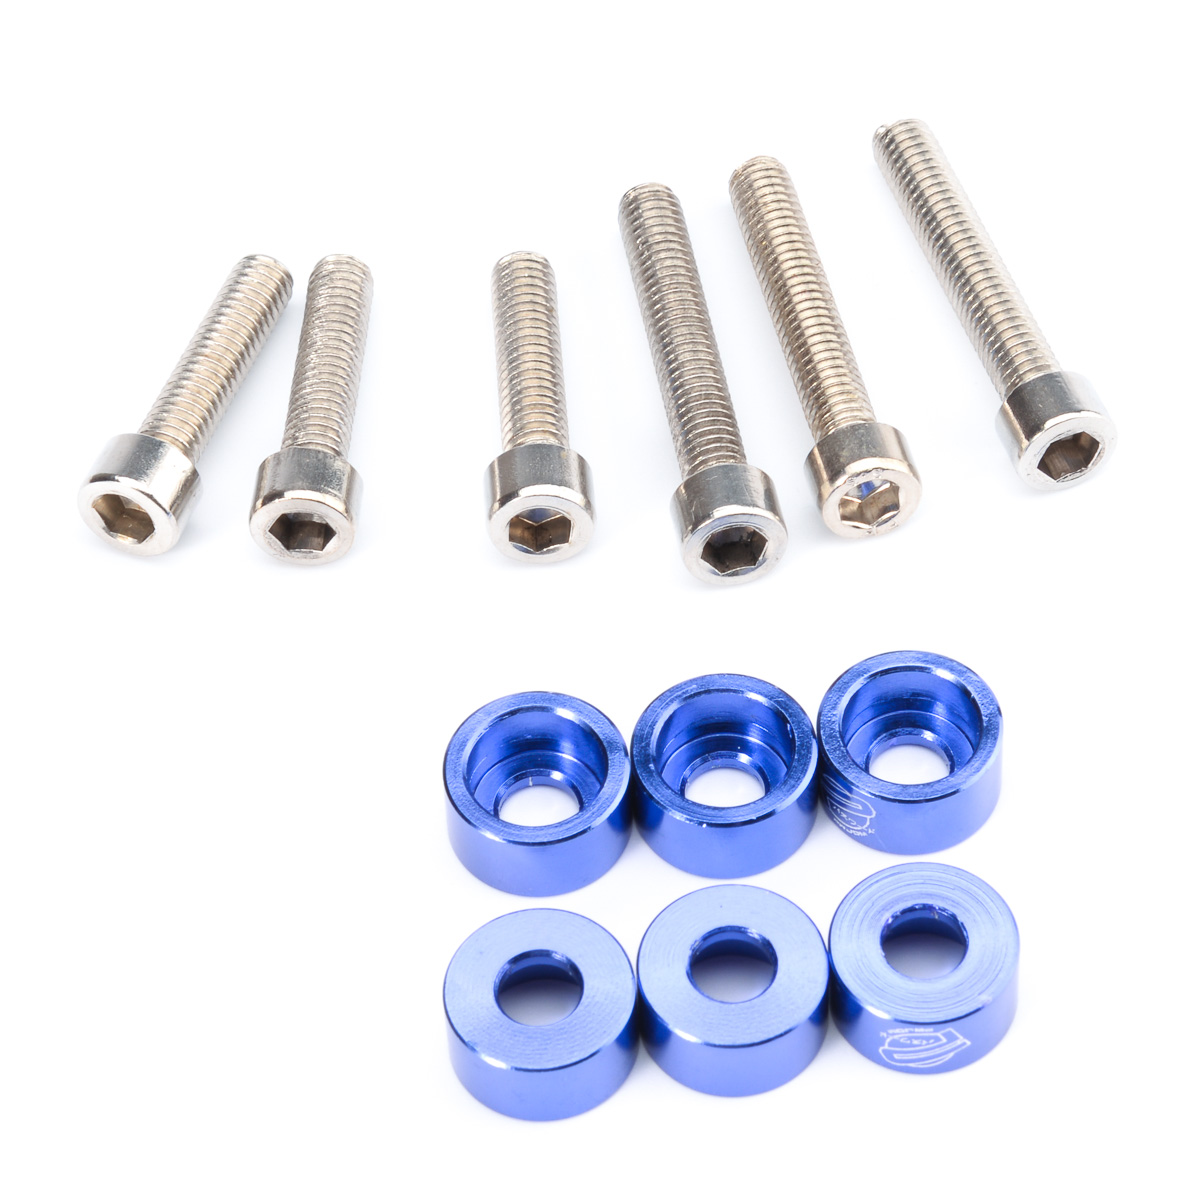 6pcs lot Blue JDM Car Gasket Screw Compartment Inlet pipe Auto Engine Parts suit Cup Washers